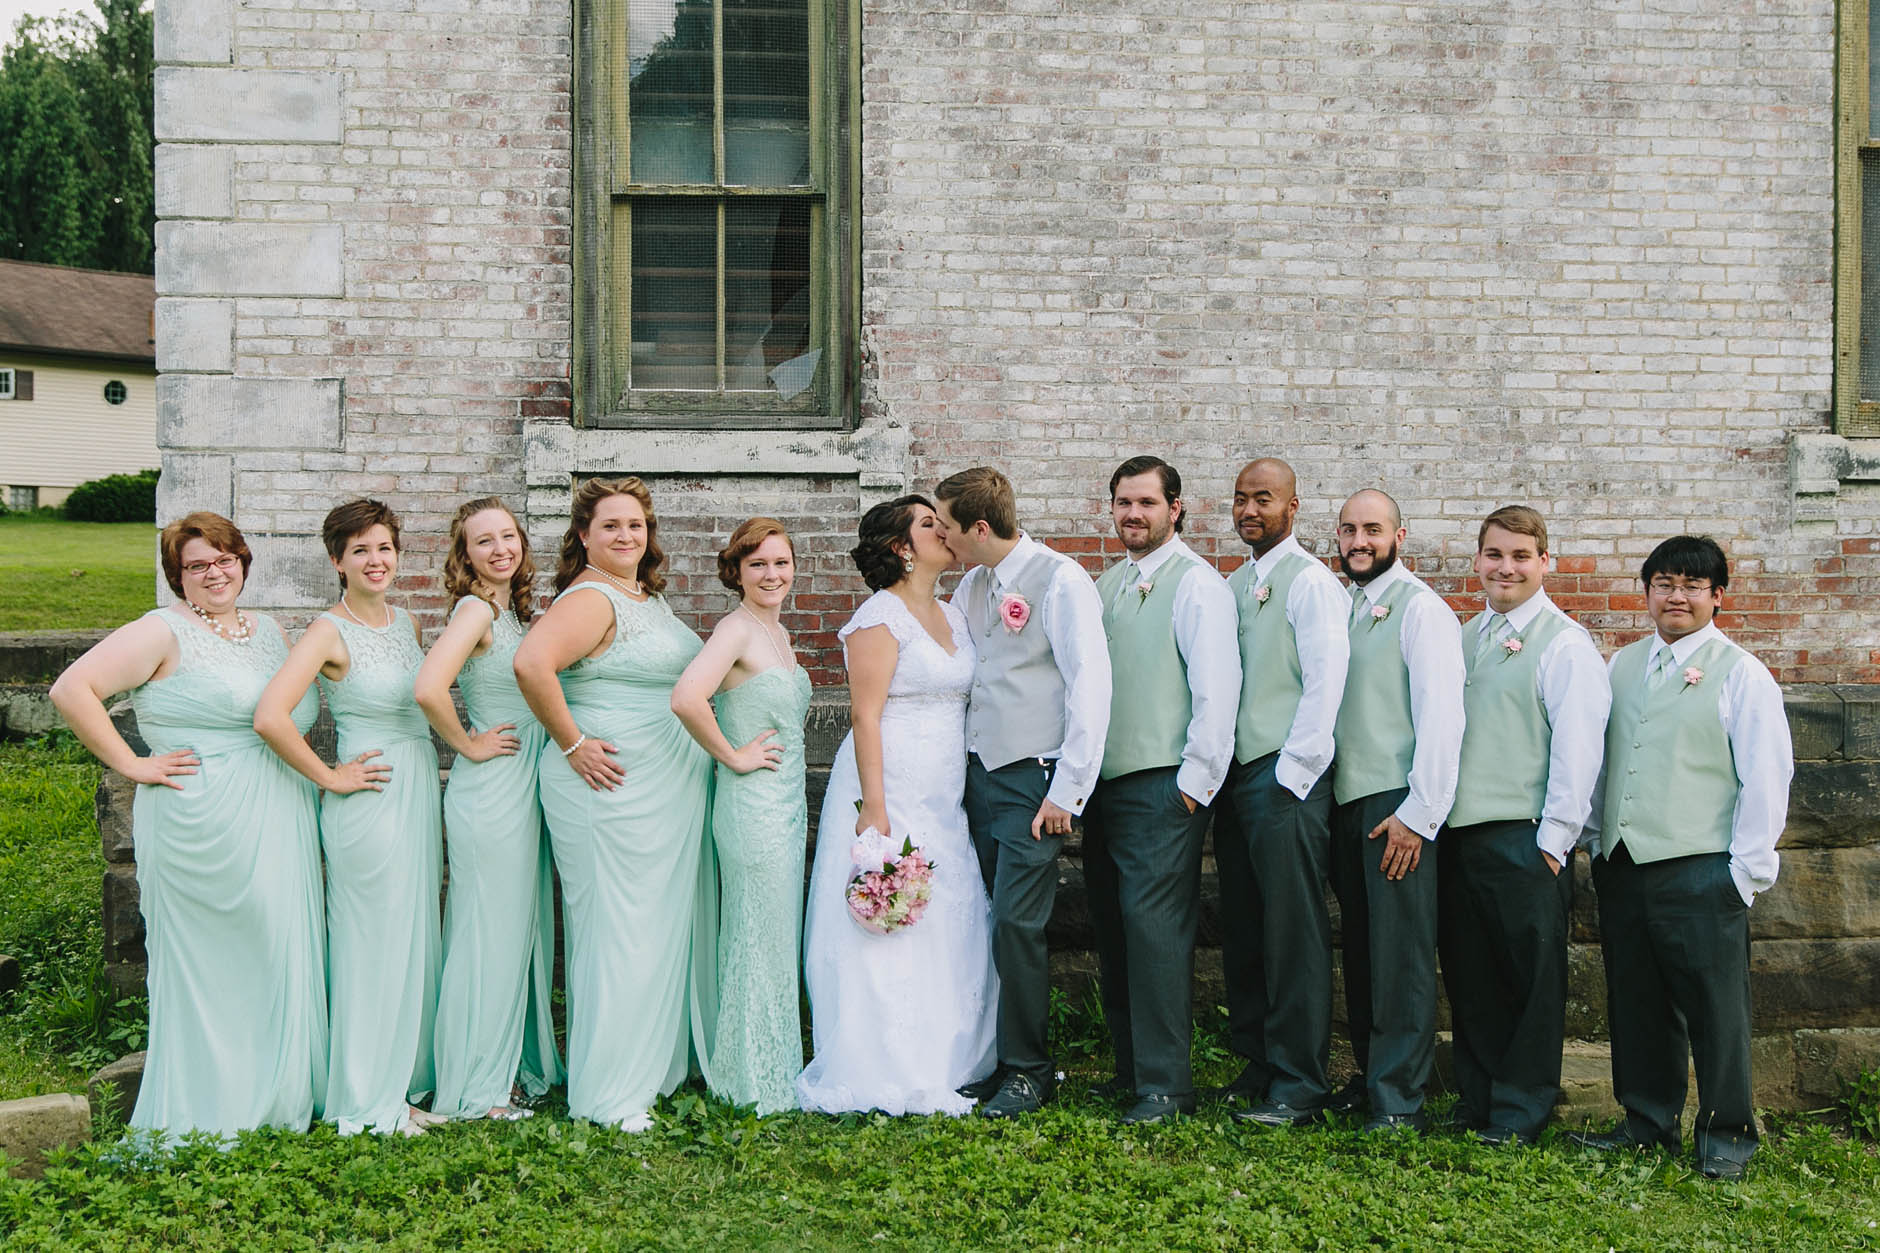 A summer wedding at St. Mary's in Massillon and St. George's Cultural Center with Jess & Joel.